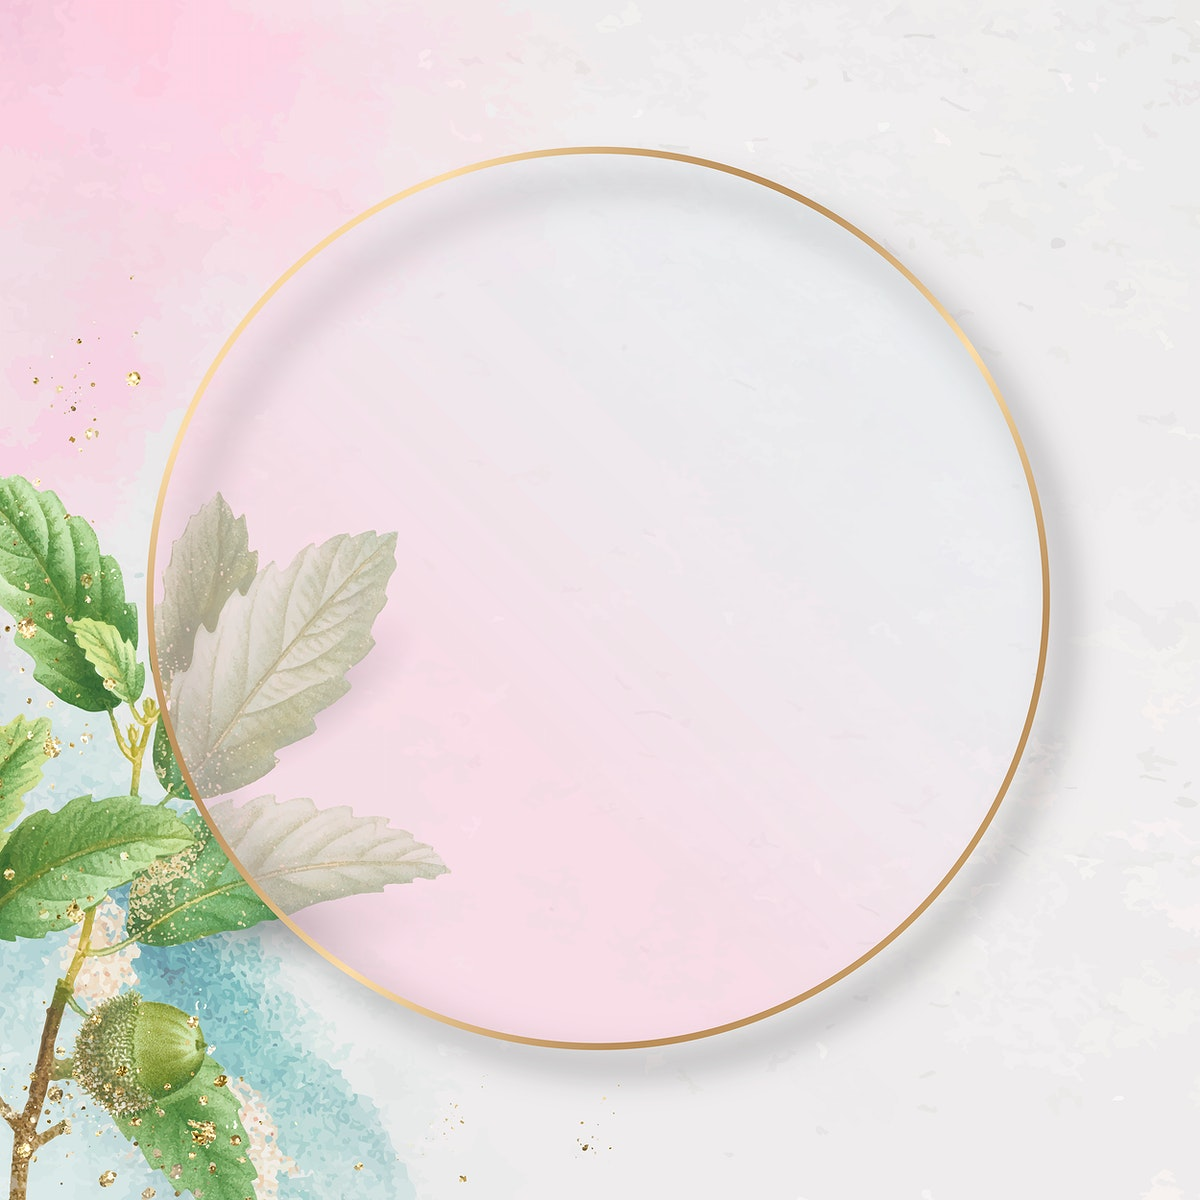 Hand drawn oak leaf pattern with round gold frame on pink background vector